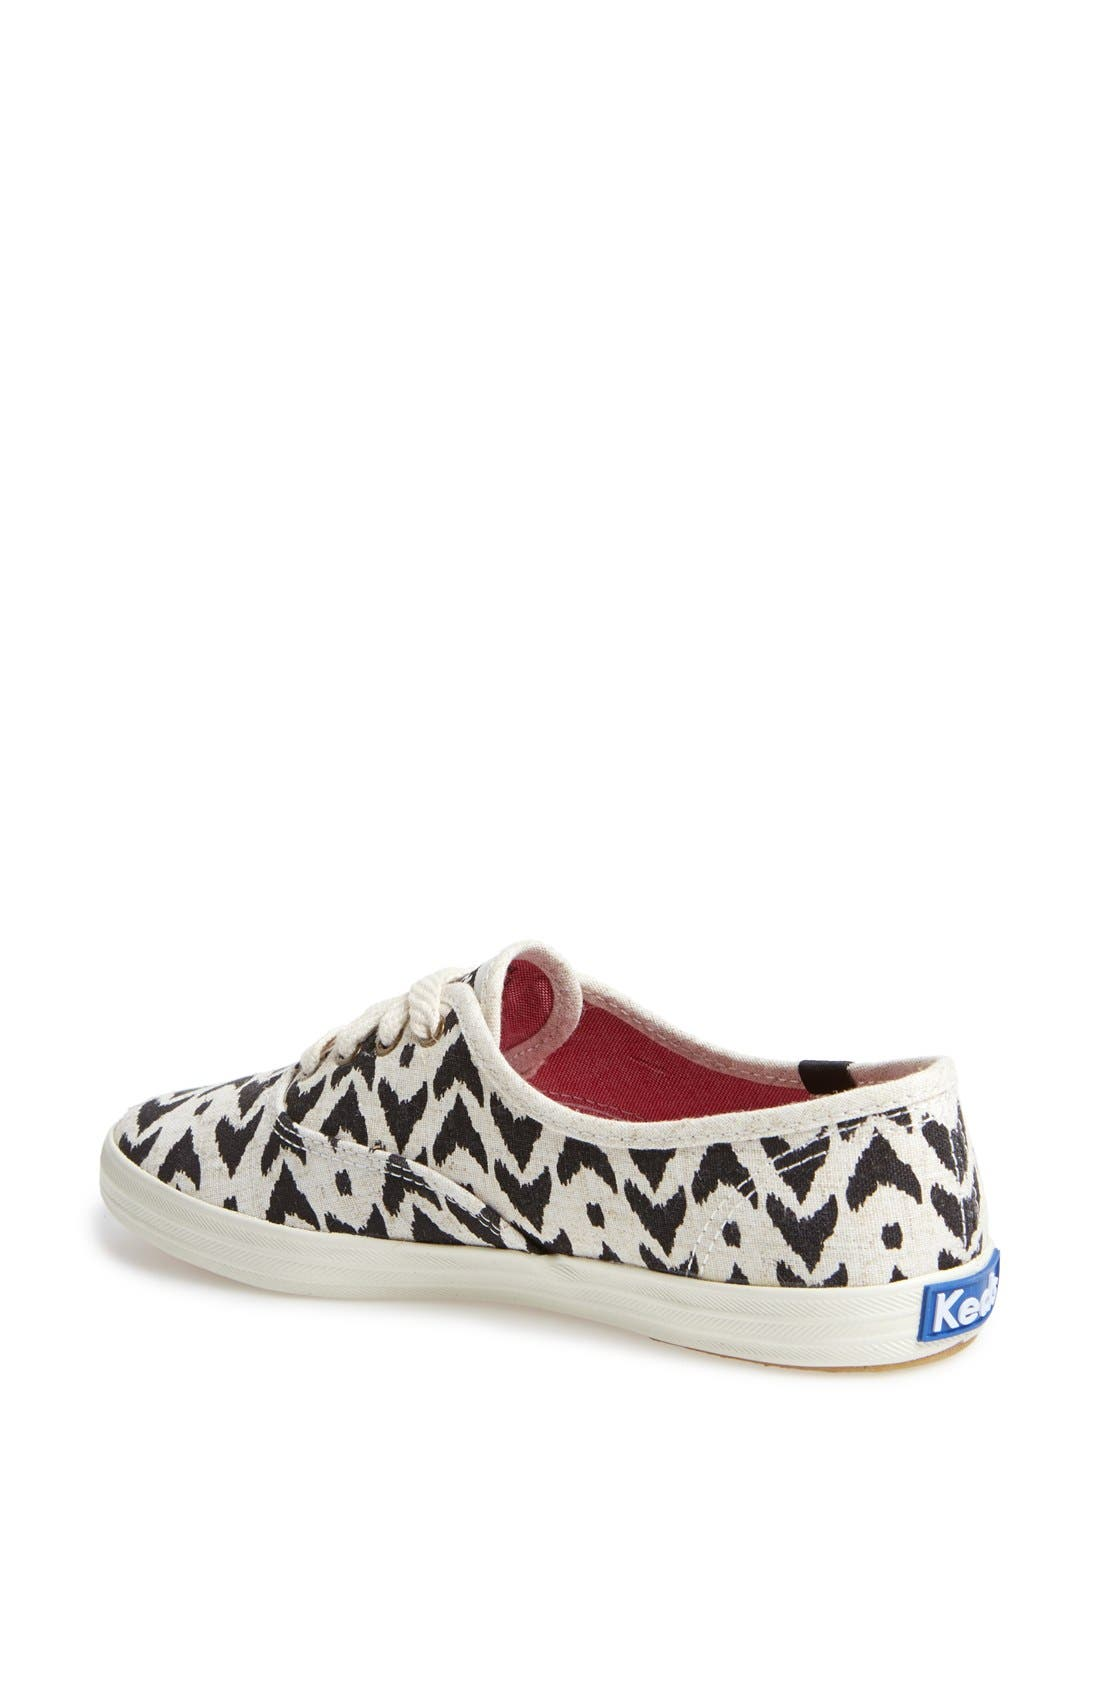 Alternate Image 2  - Keds® 'Champion - Ikat' Sneaker (Women)